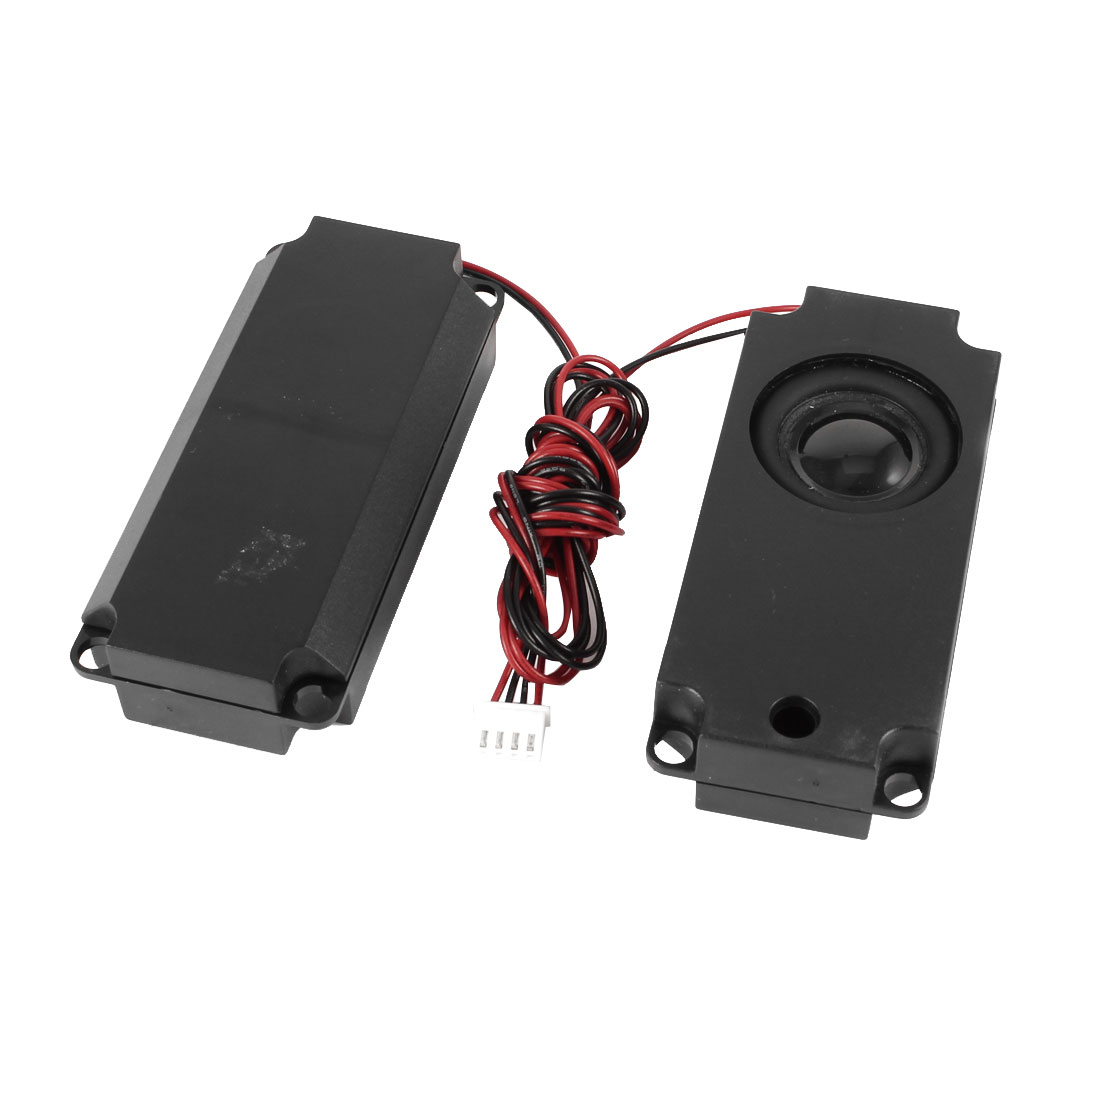 2pcs 100mm x 45mm x 21mm Plastic Shell 2-Leads Audio Speaker Black 4 Ohm 3W